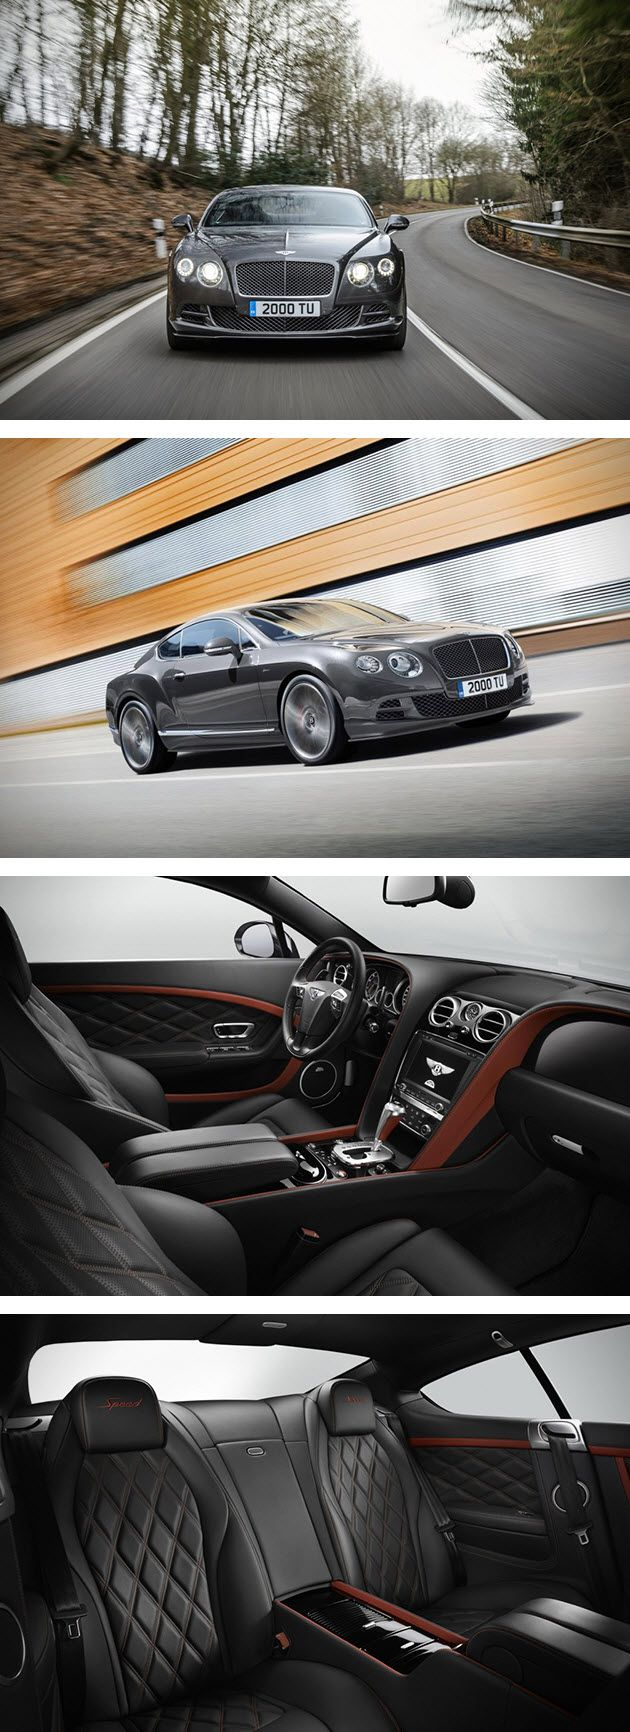 2015 BENTLEY CONTINENTAL GT SPEED. Luxury safes, luxury cars, exclusive design, luxury goods, luxury life. For more luxury news check out: http://luxurysafes.me/blog/